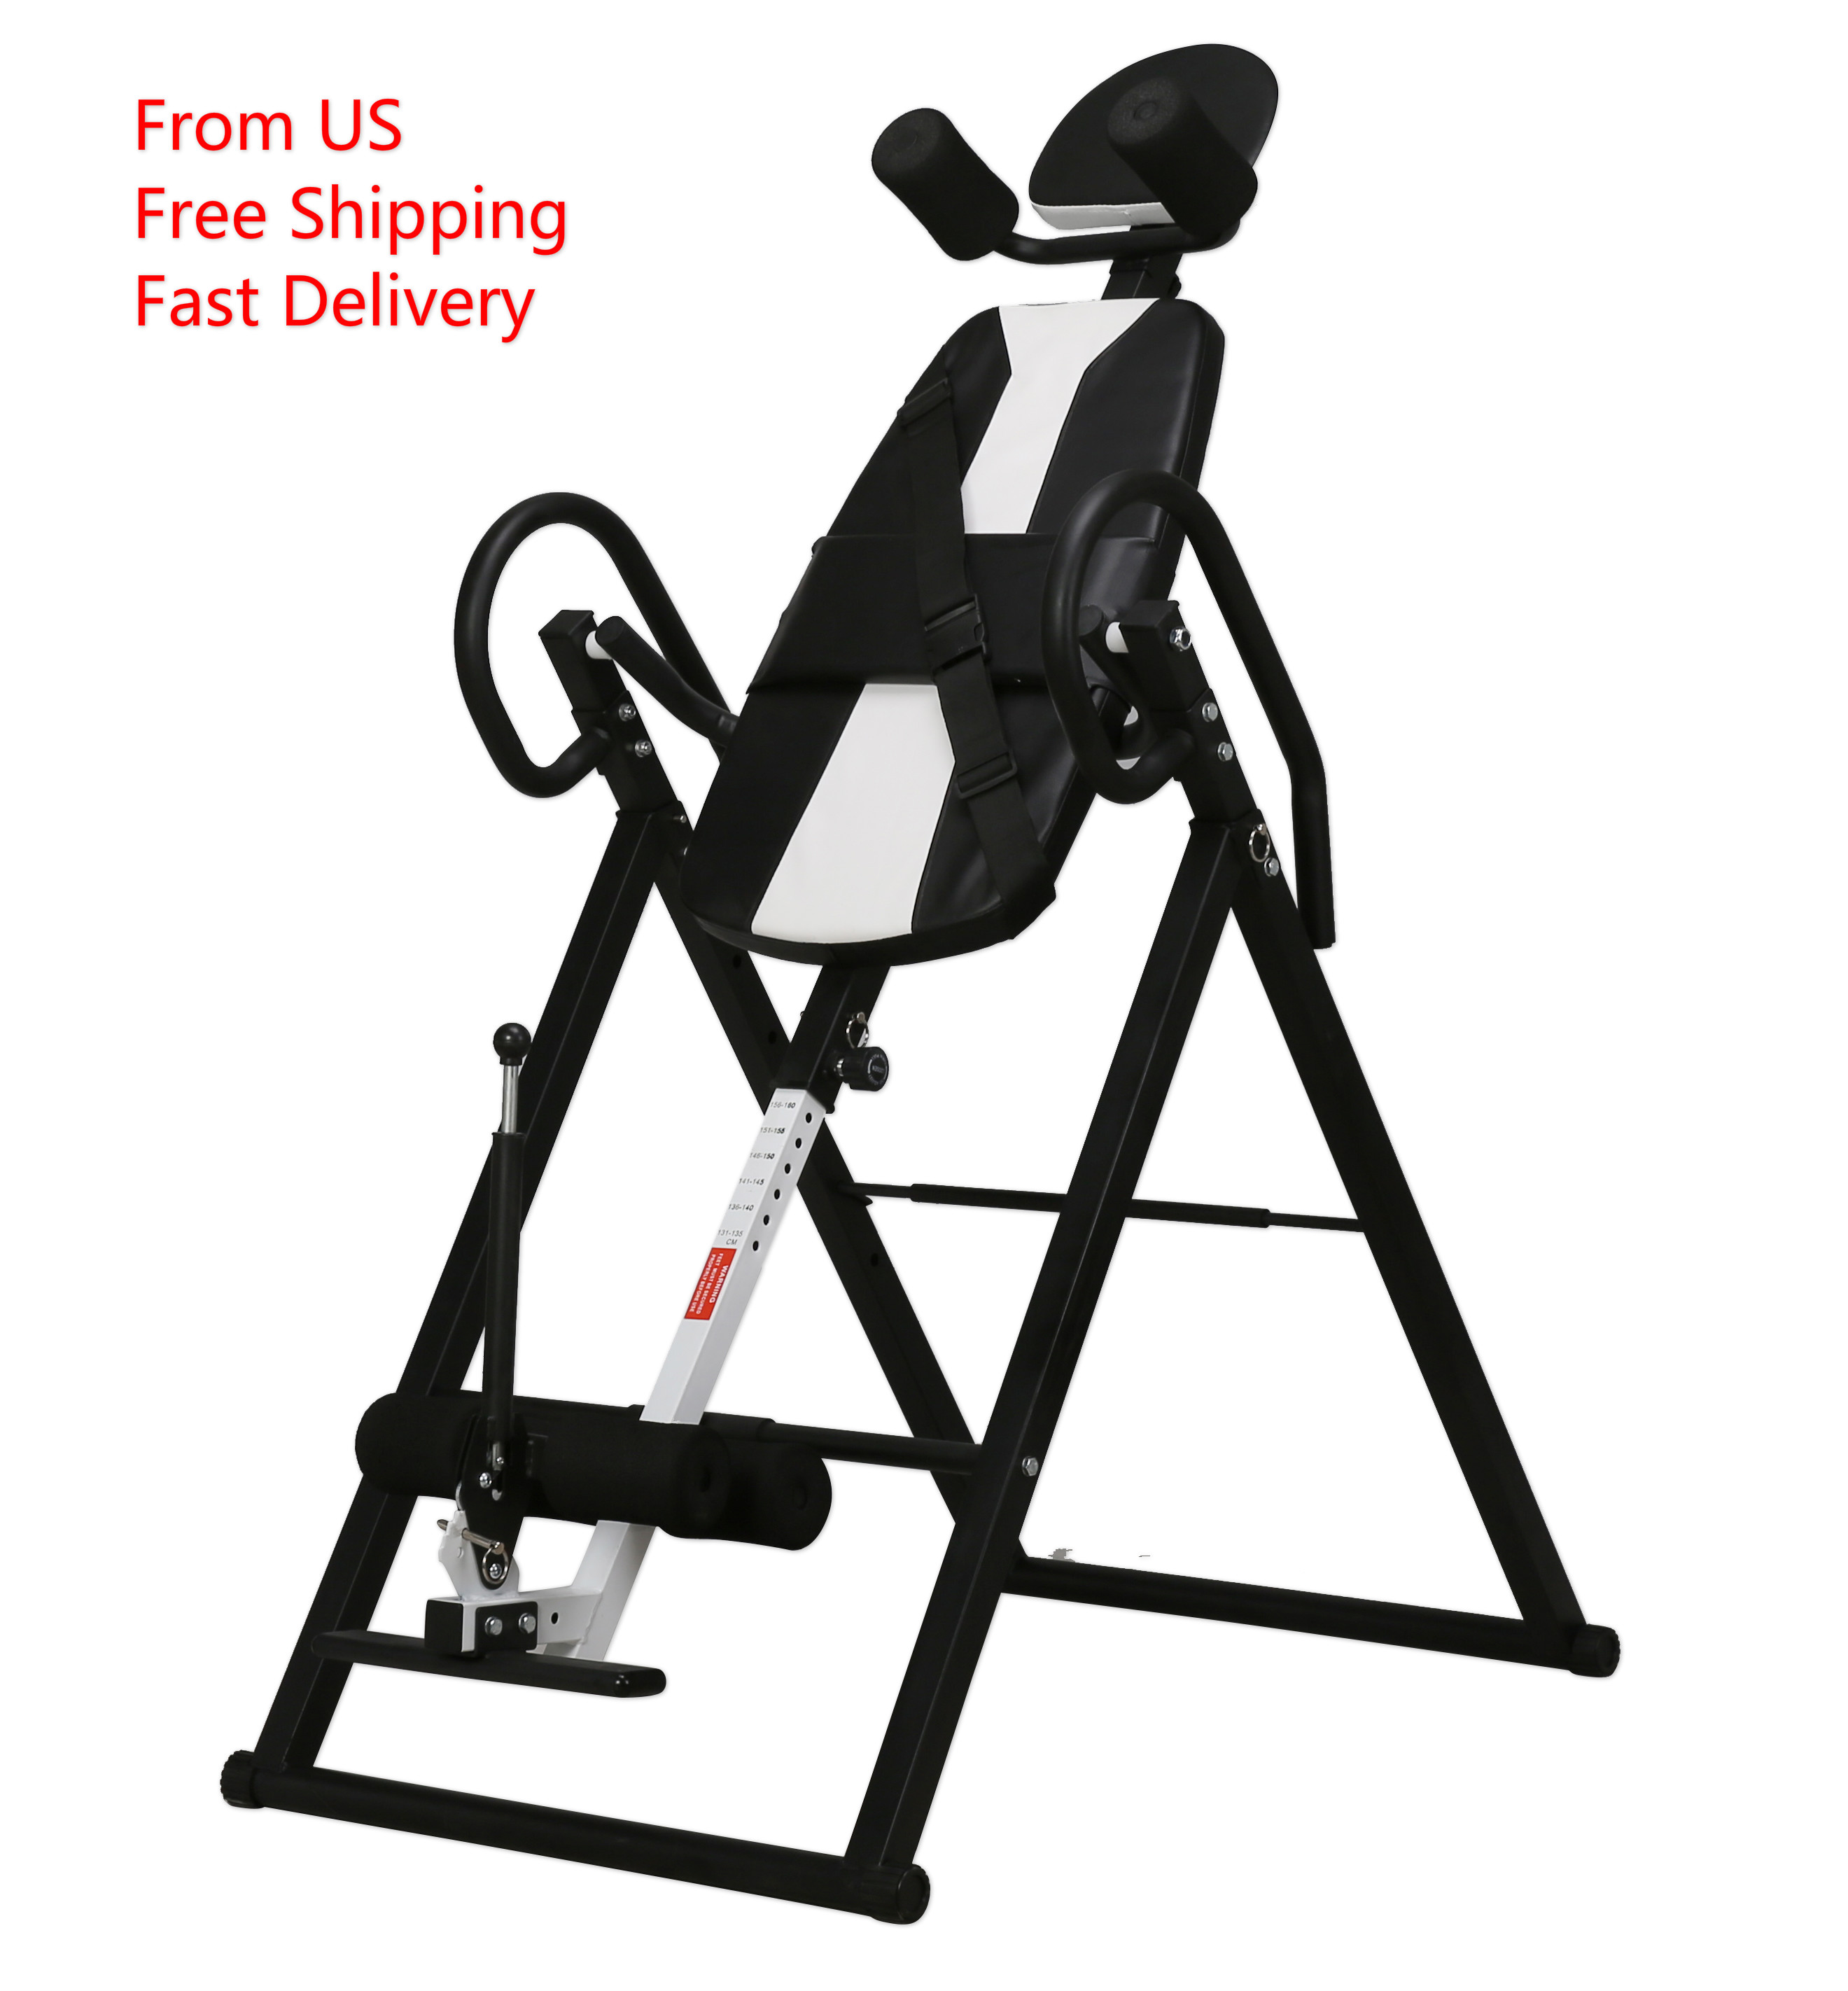 Heavy Duty Gravity Inversion Table  Foldable Back Neck Pain Exercise Therapy Bench Body Sculpture Fitness Equipment